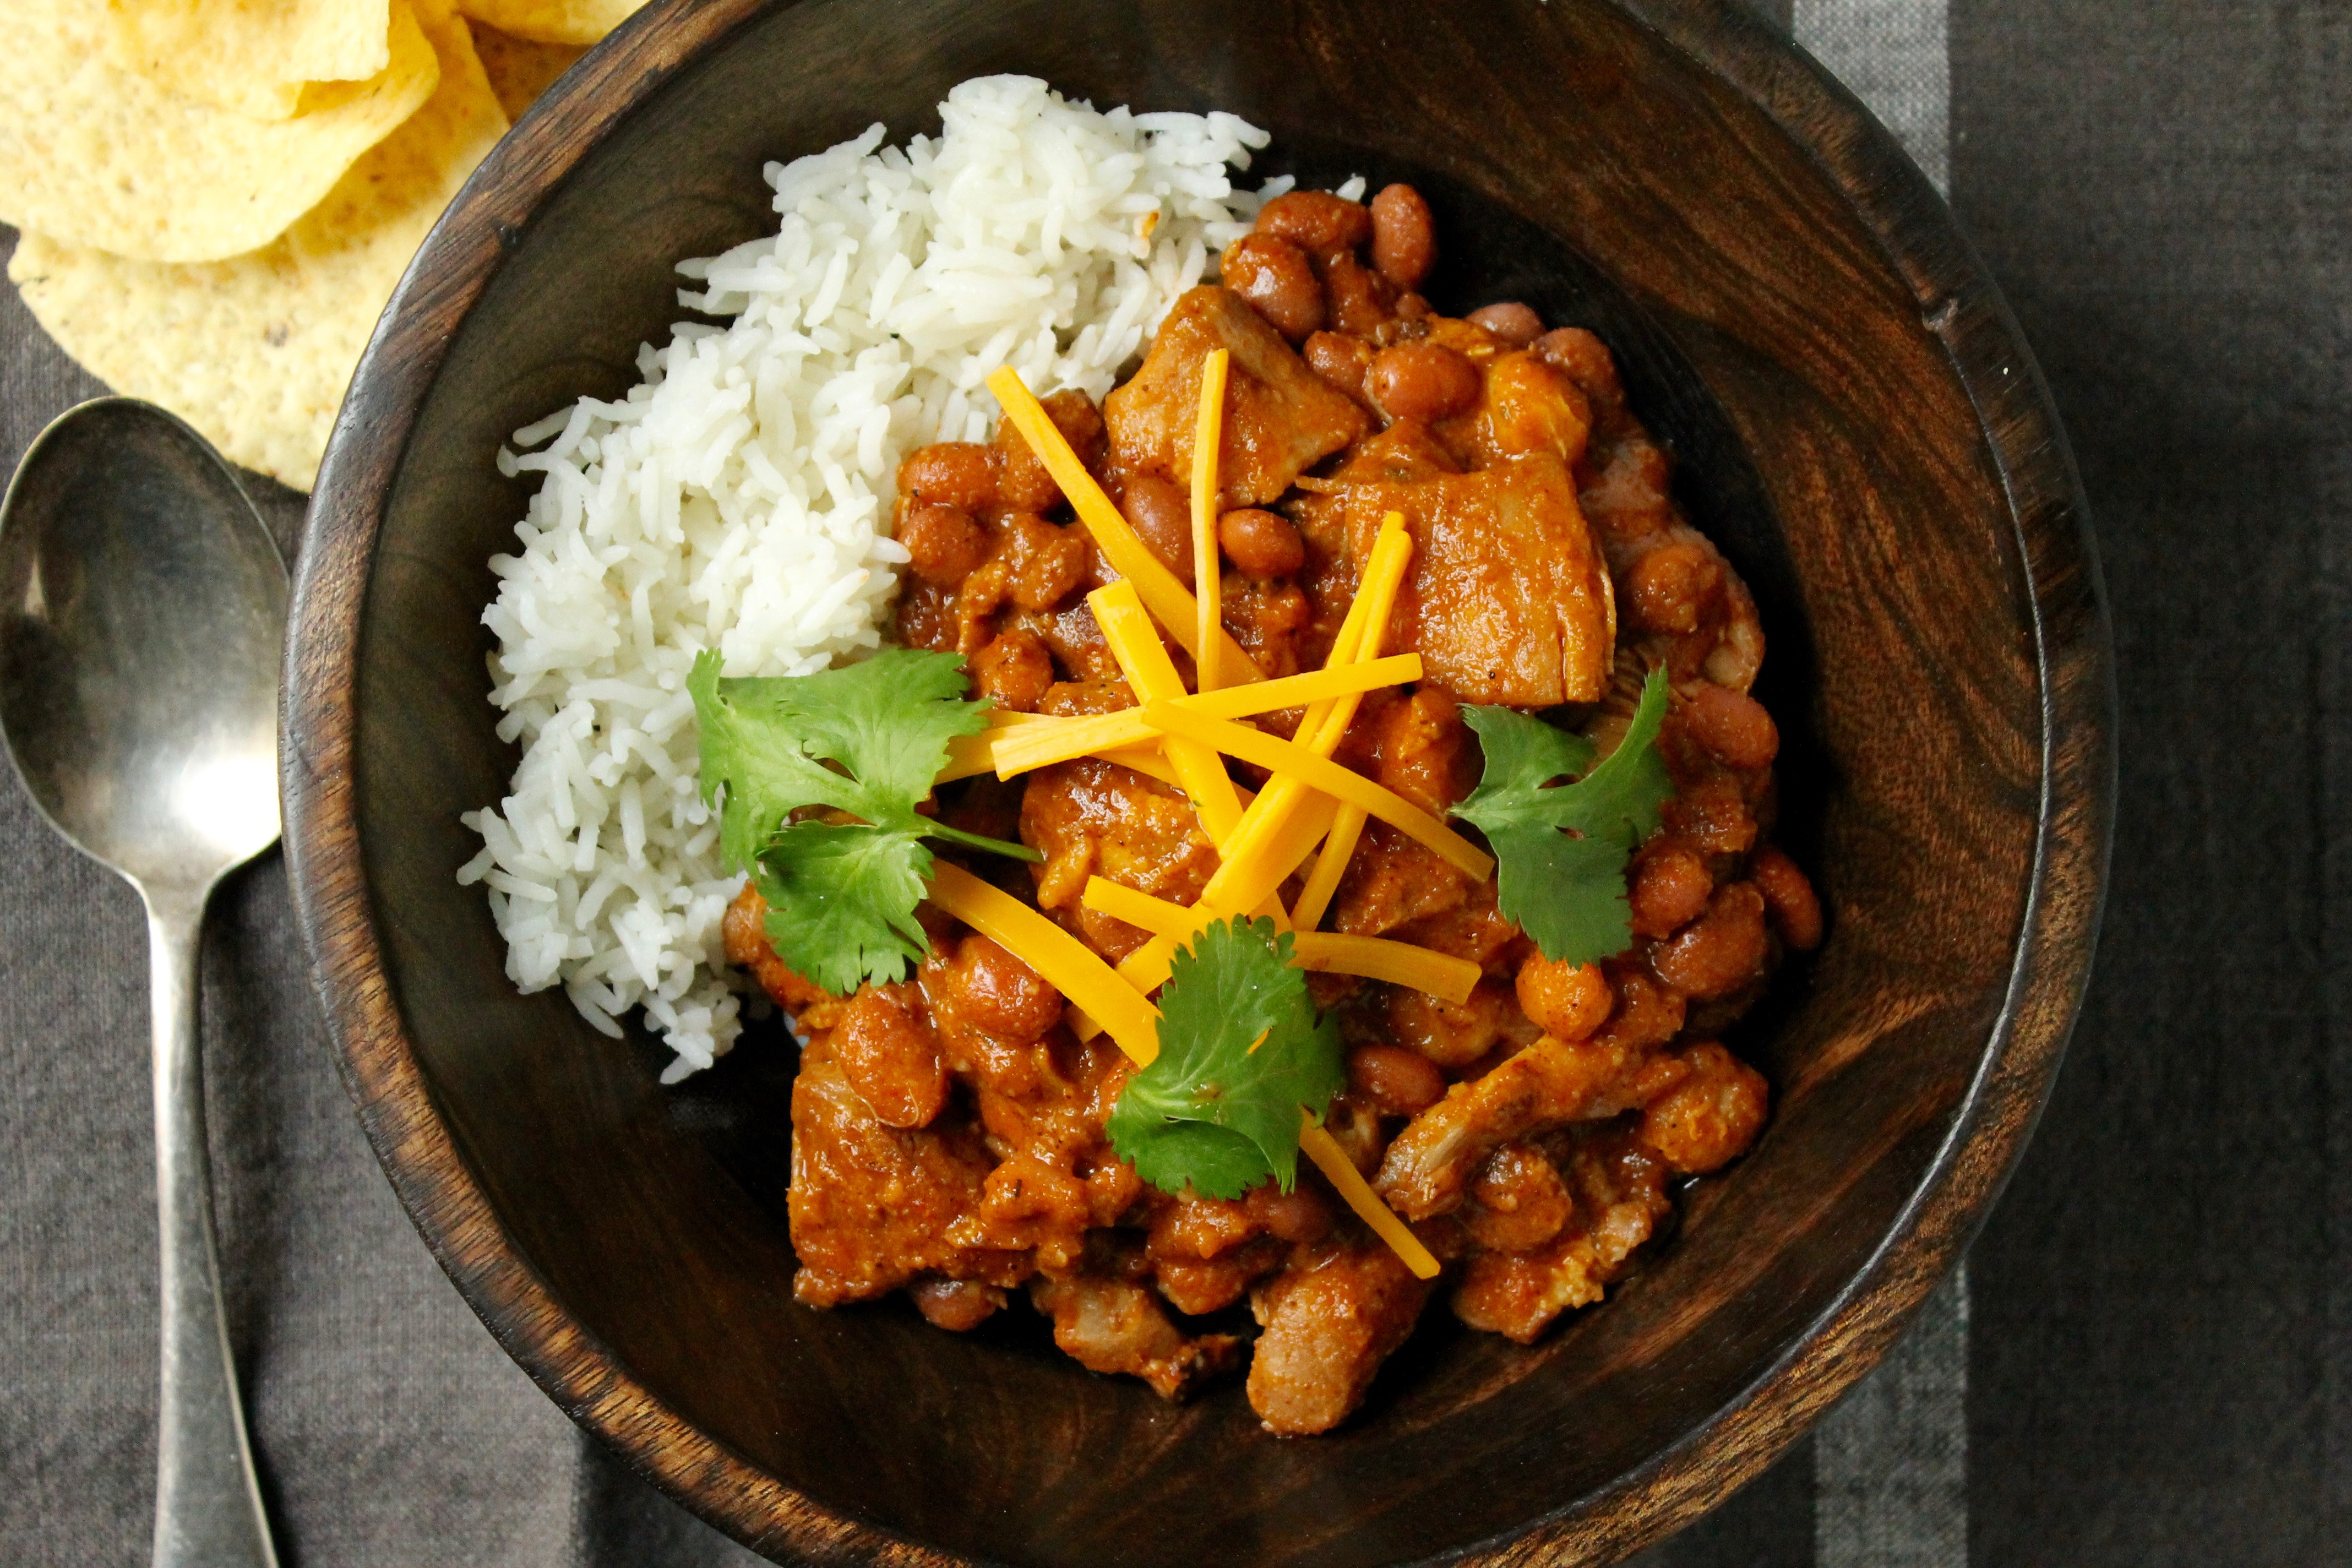 Chili recipes that will warm you up from the inside forumfinder Image collections